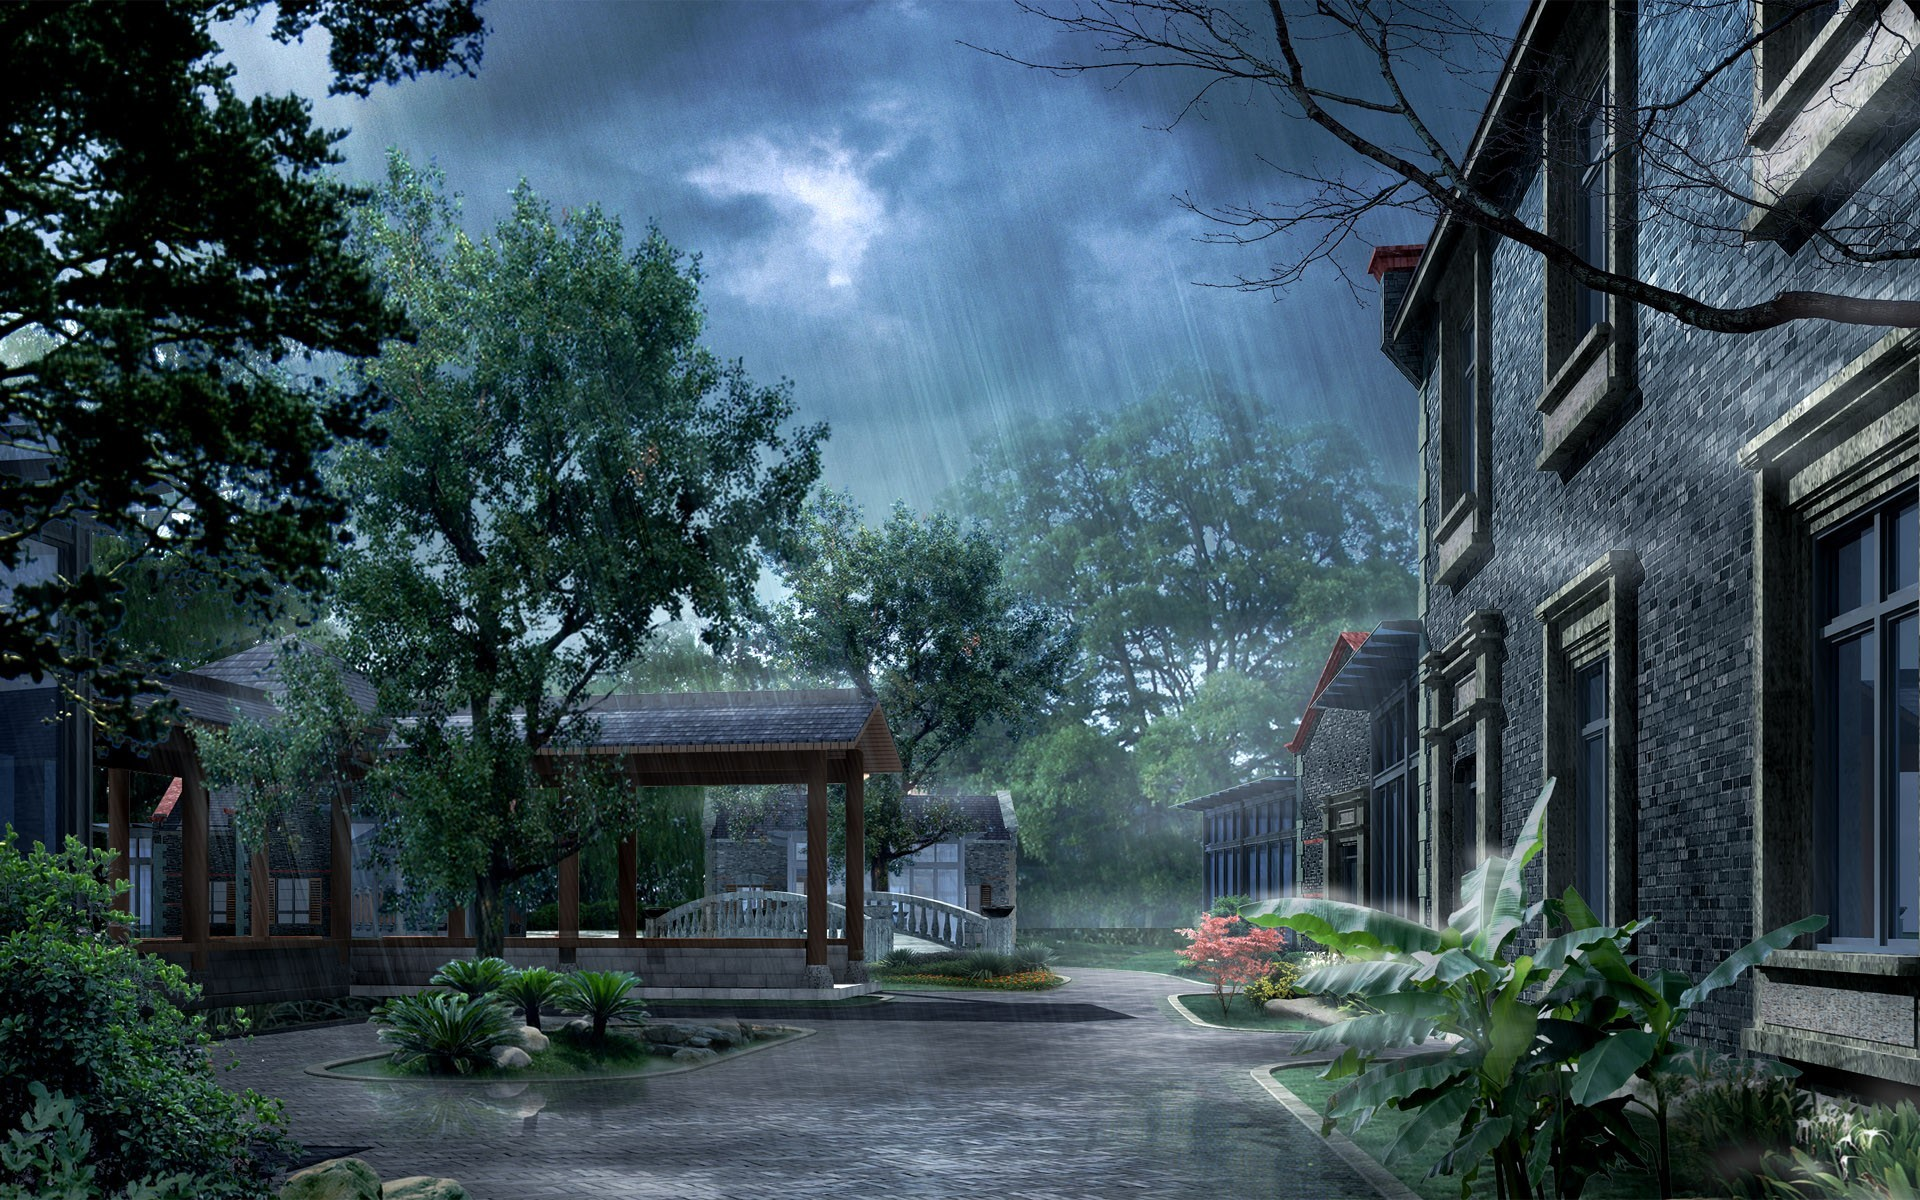 Explore Rain Pictures, Wallpaper Backgrounds, and more!